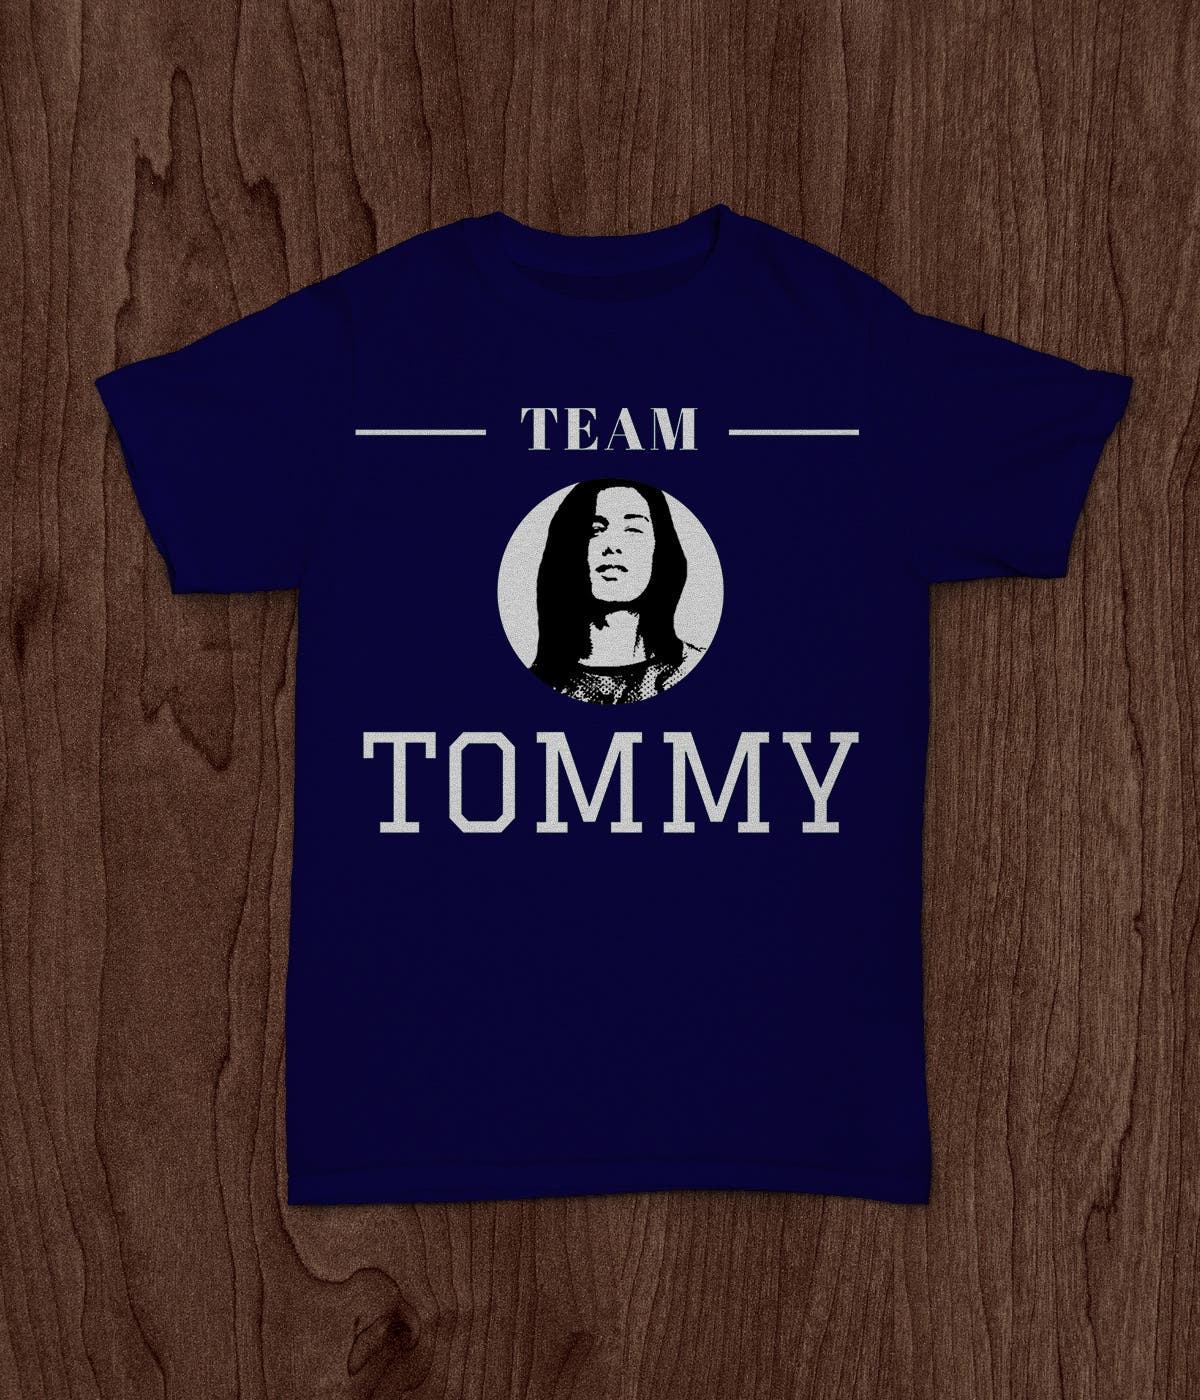 Team Tommy Tshirt